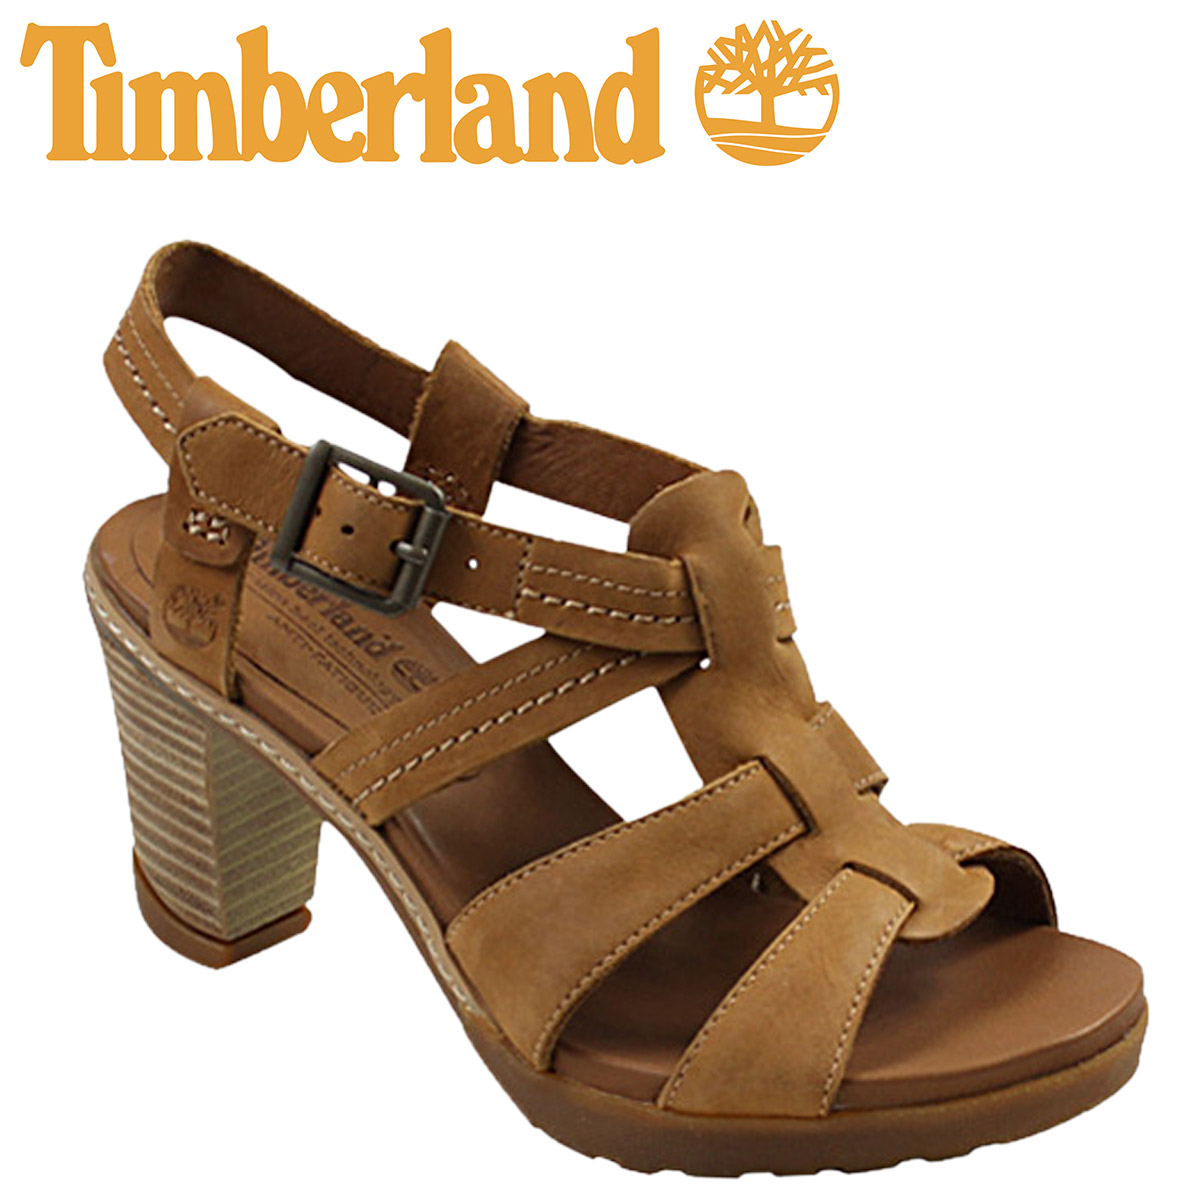 ALLSPORTS   SOLD OUT  Timberland Timberland Womens kids Earthkeepers  Stratham heights sandal ankle strap  dark Tan  EK STRATHAM HEIGHT SDL ANK  leather 8137R ... e6a8c998b